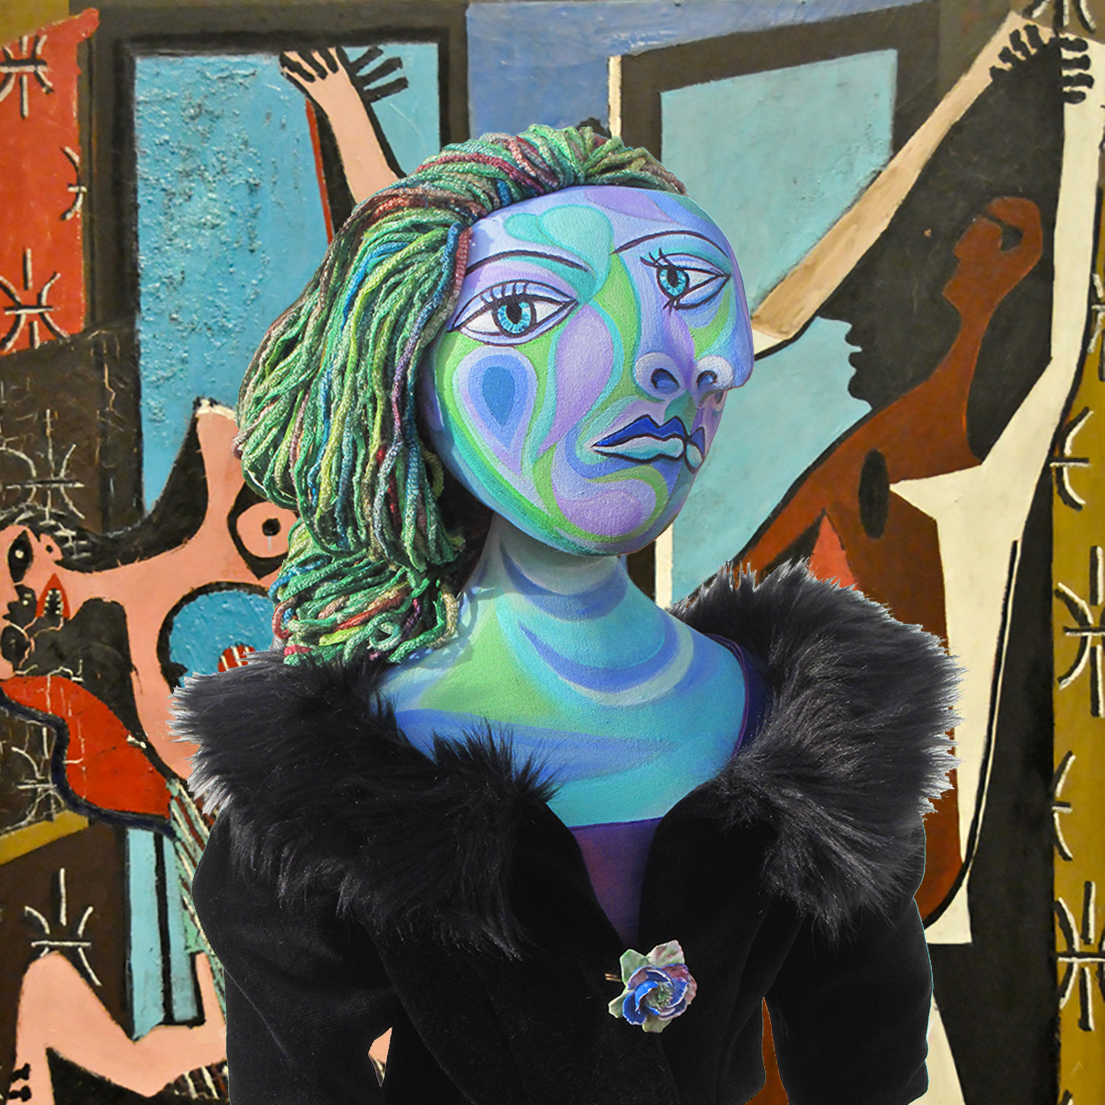 "Dora Maar muse with ""The Three Dancers,"" by Pablo Picasso, 1925. Dora Maar muse, designed and sculpted in textiles by artist, Marina Elphick. Dora Maar, one of six of Picasso's muses and lovers, Dora Maar was a renowned Surrealist photographer and artist herself."